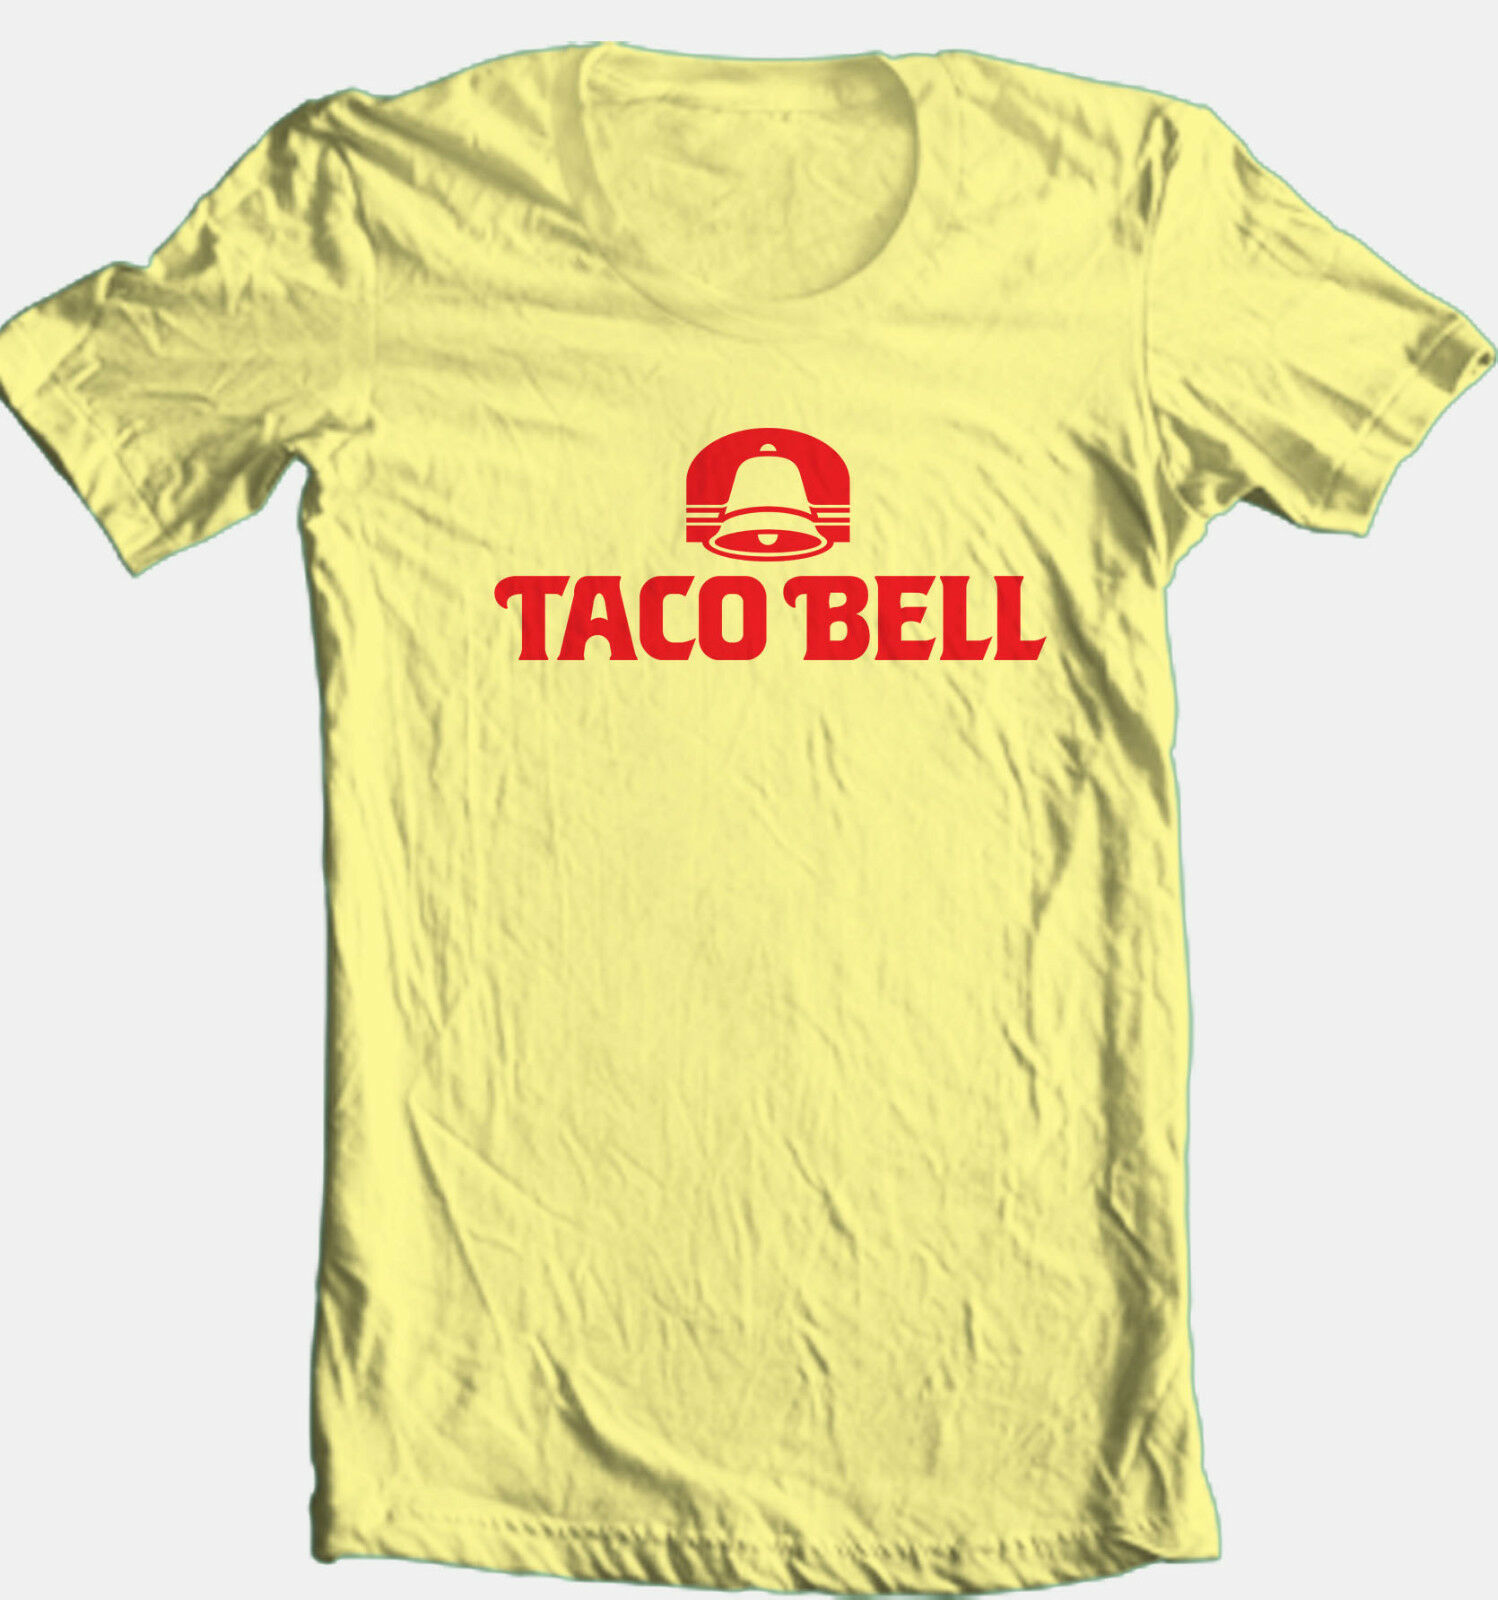 Taco Bell T-shirt retro 1980's logo fast food restaurant 100% cotton graphic tee